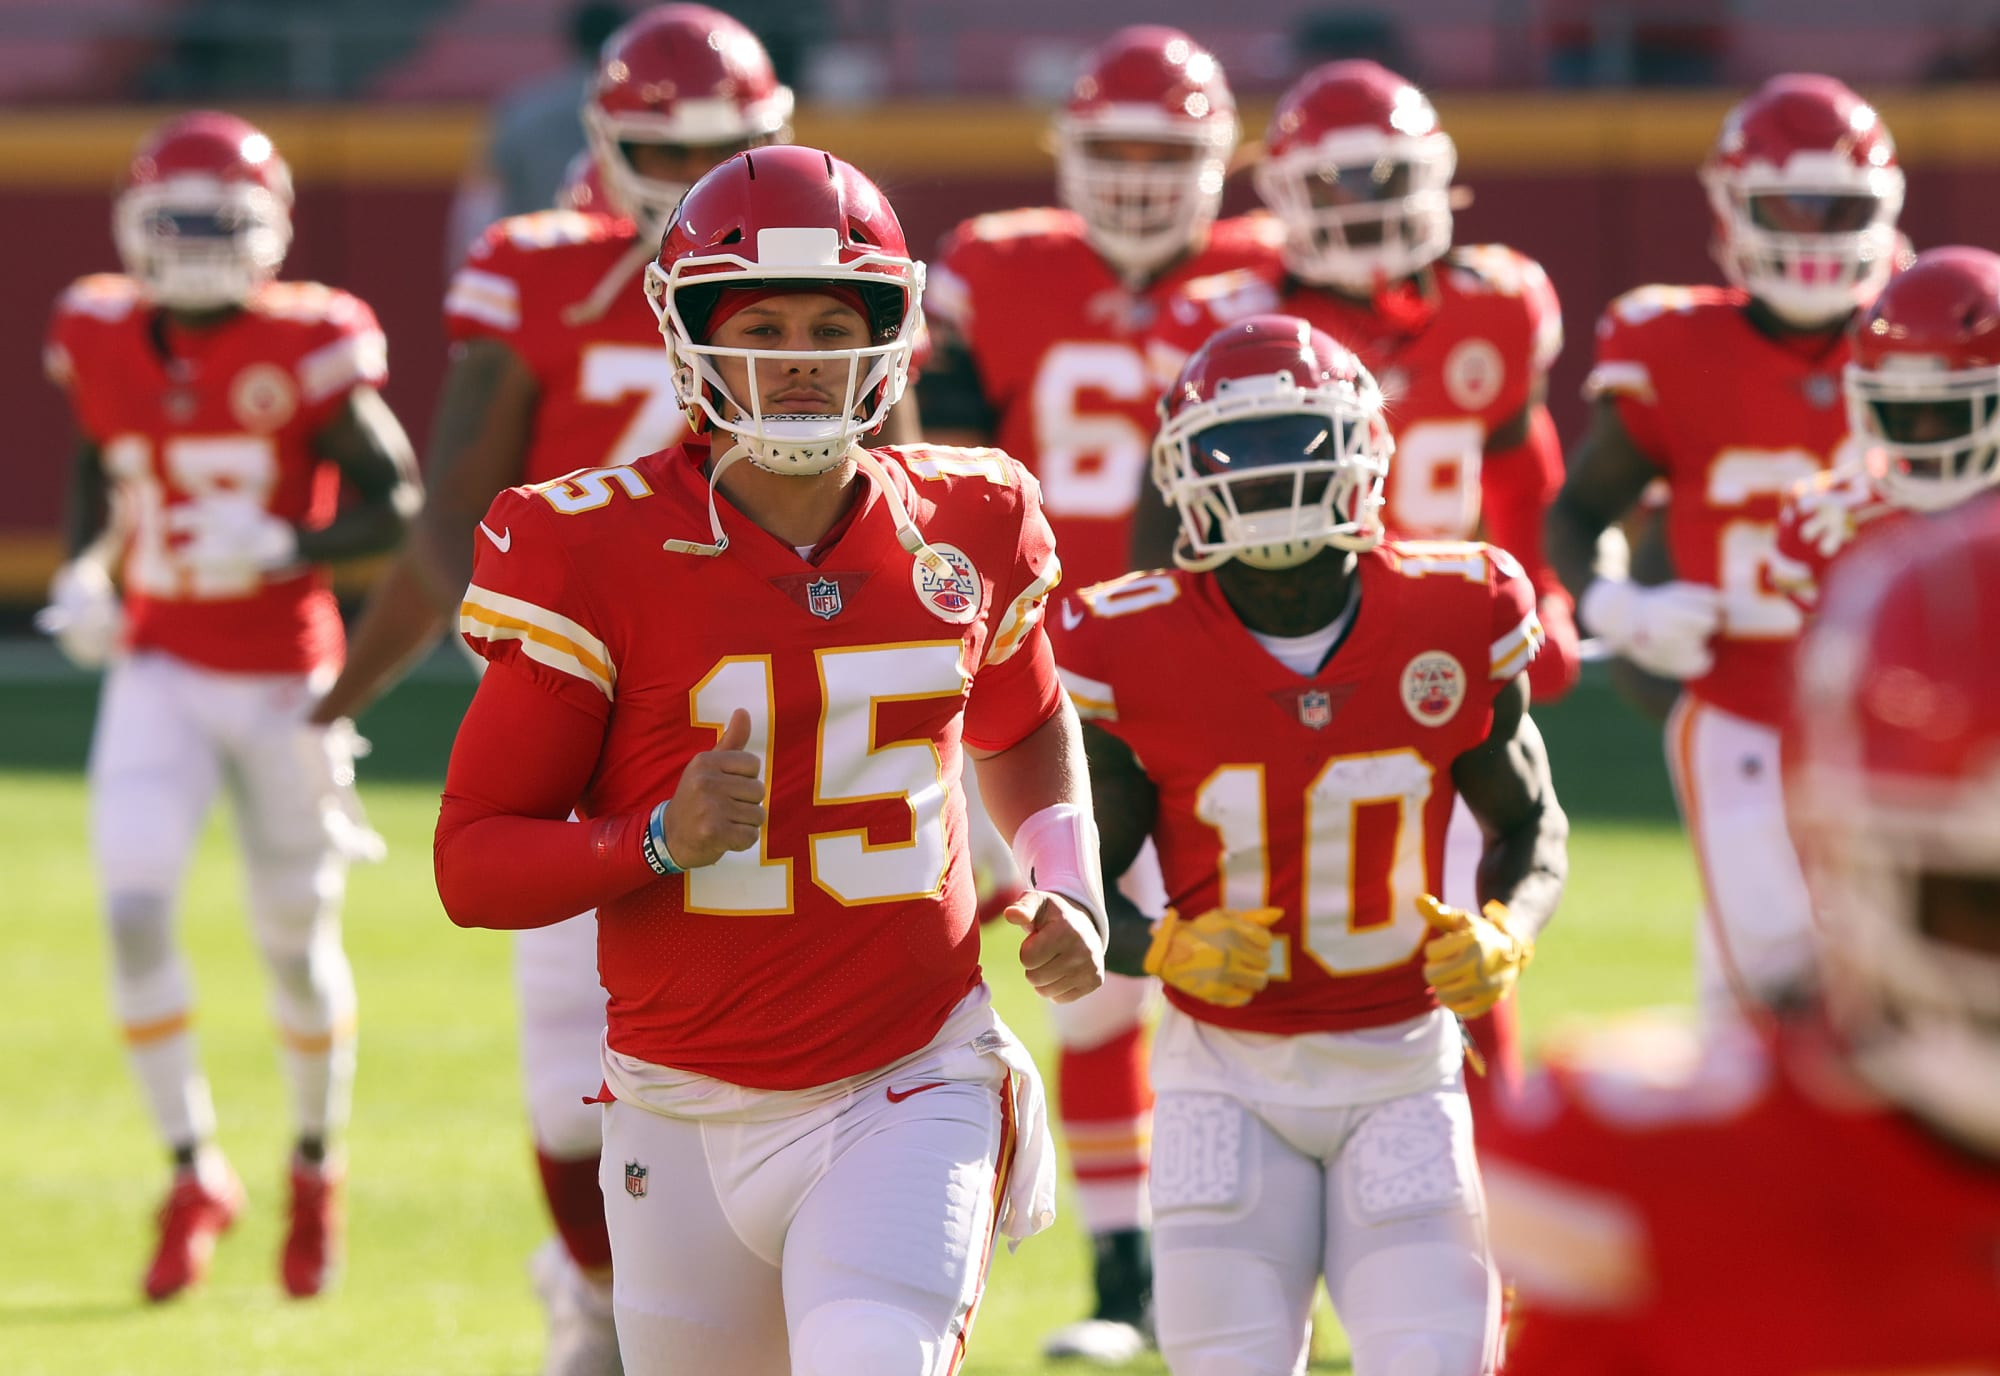 Patrick Mahomes using Odell Beckham Jr.'s declaration as motivation